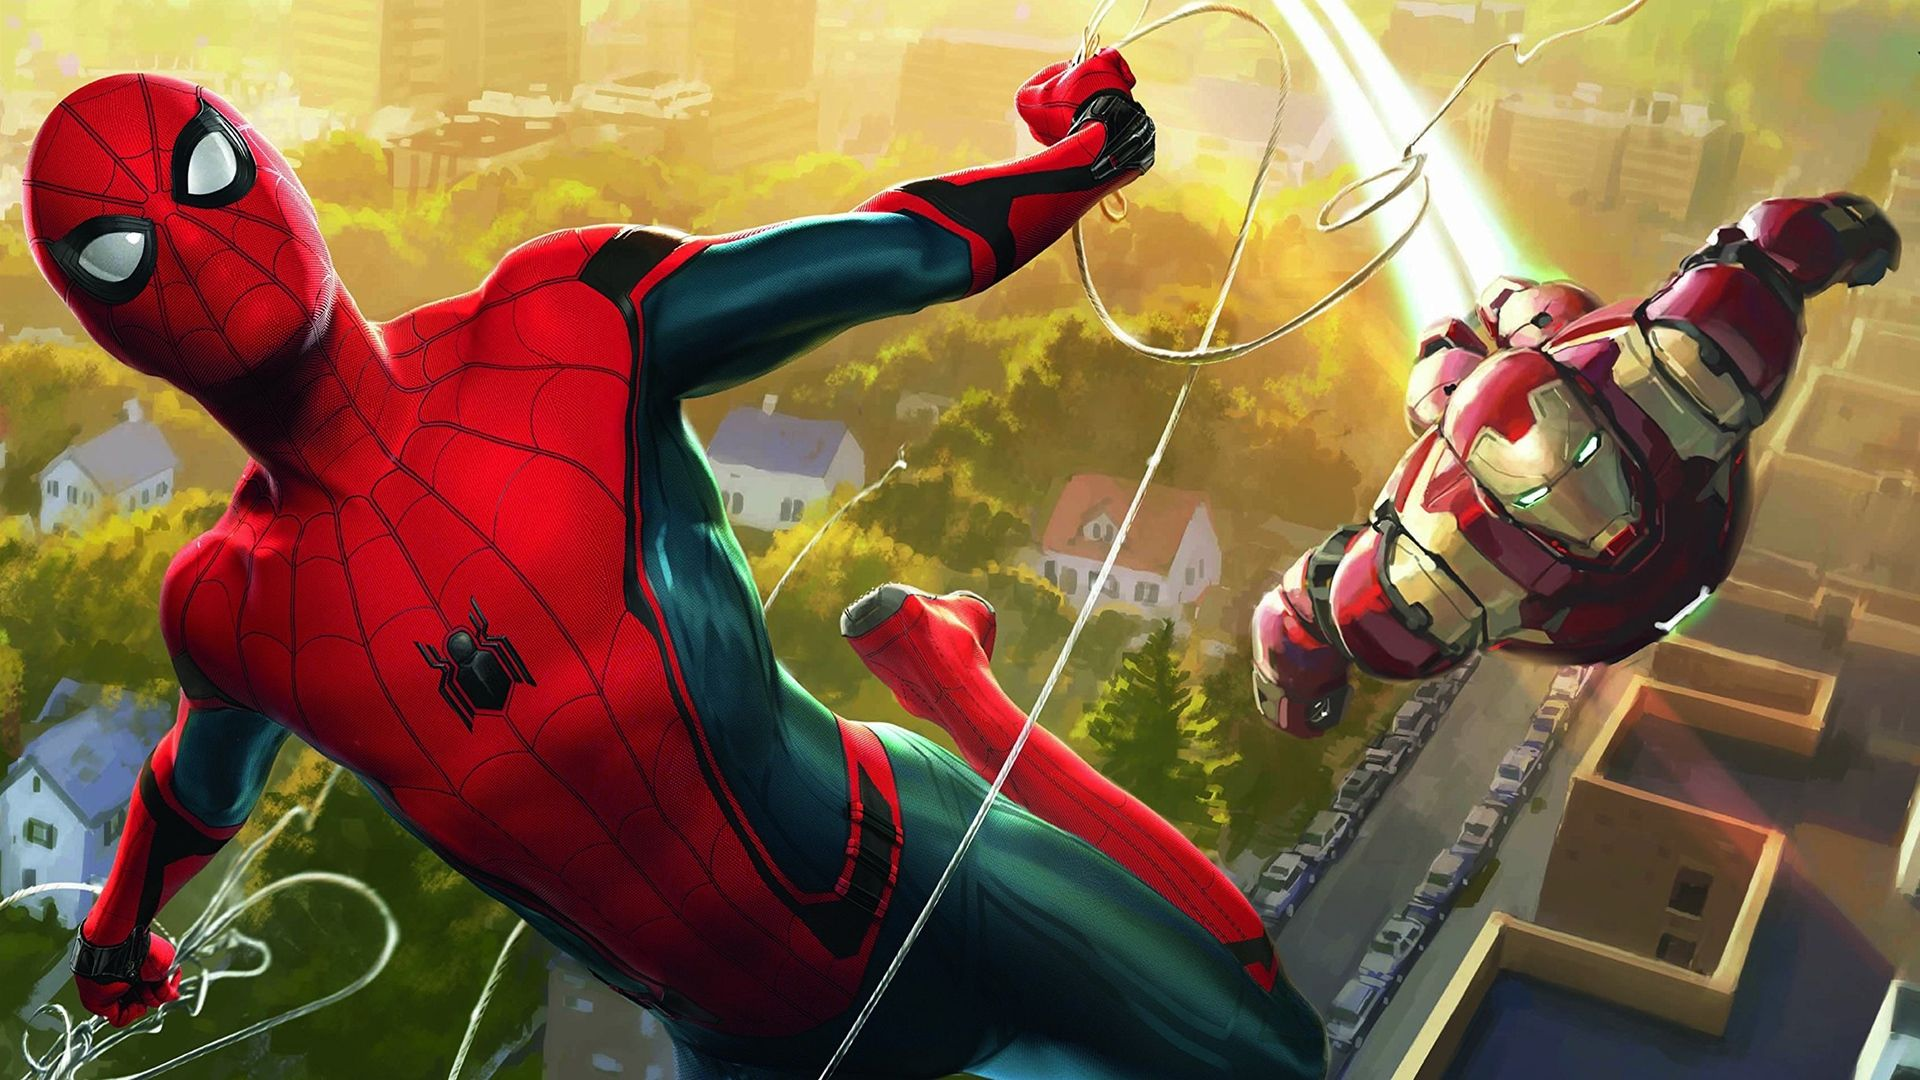 30 Latest Spider Man Homecoming Hd Wallpaper 2017 Iron Man